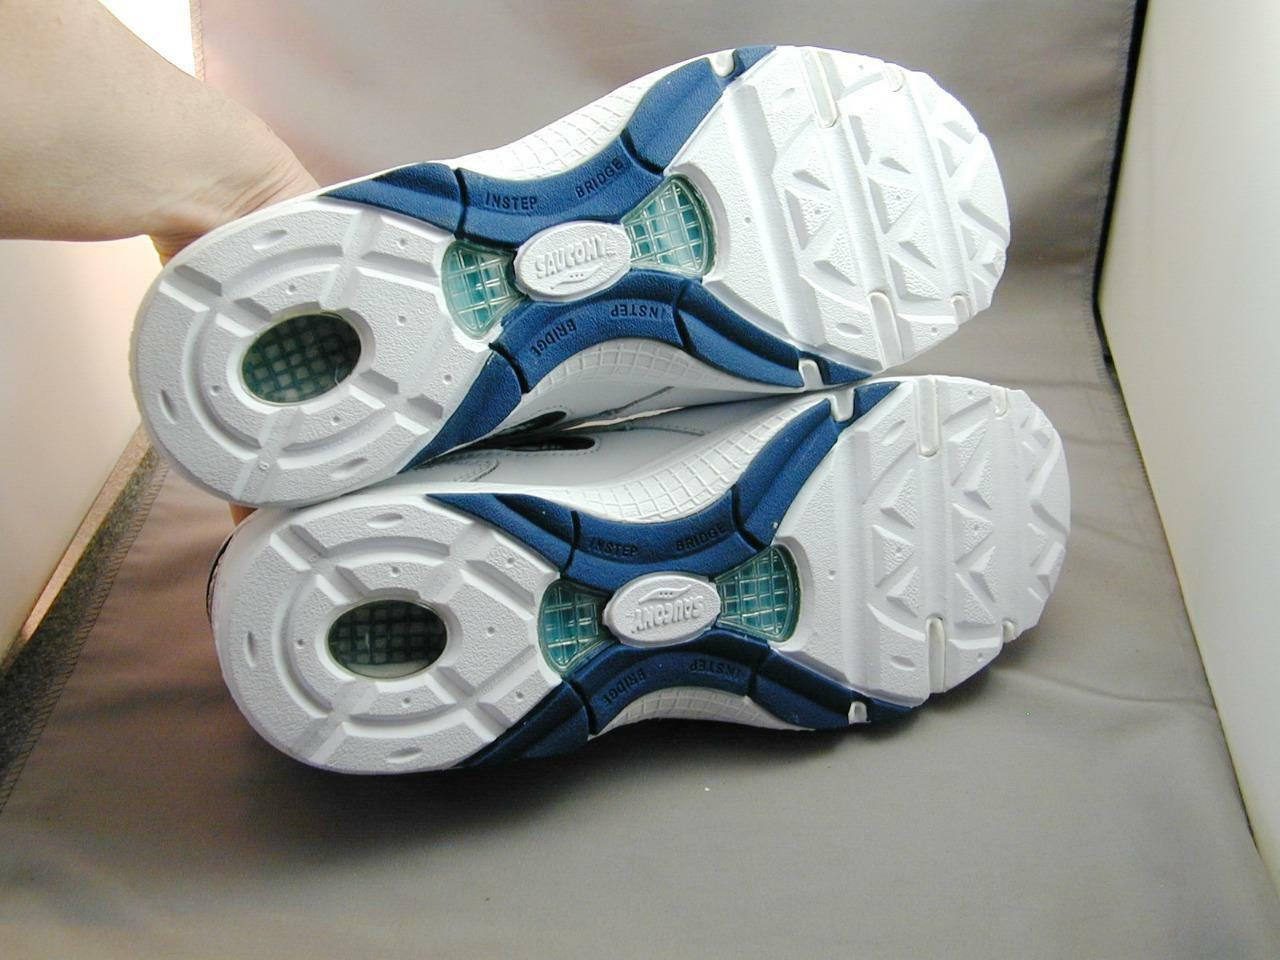 Saucony Saucony Saucony Grid Motion Women's White & Navy 9 1 2 W Walikng shoes NIB c09387